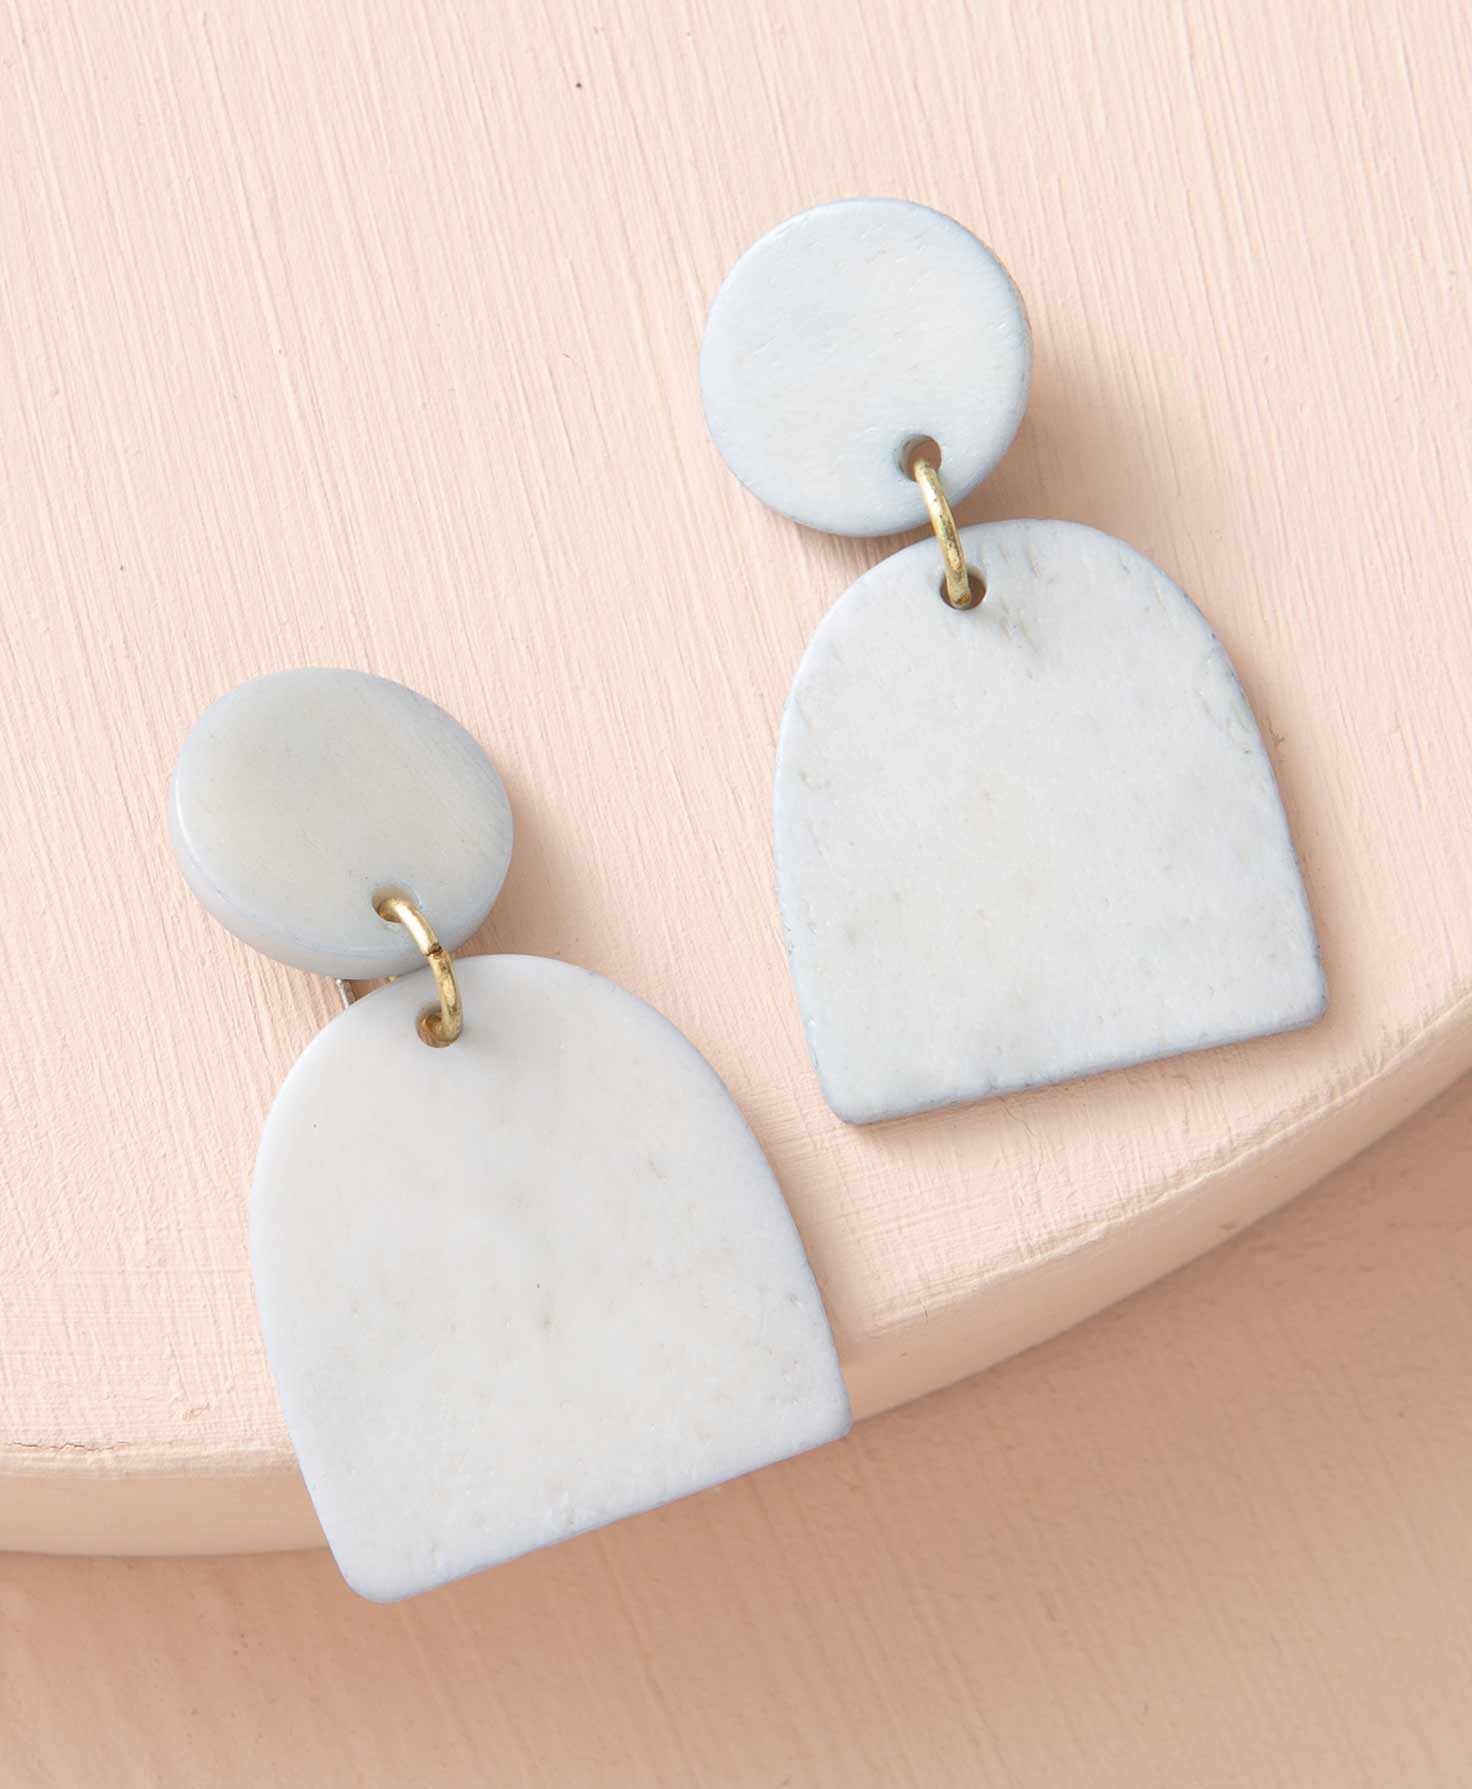 The Monument Earrings lay on a peach-colored surface. They are post-style earrings featuring geometric shapes carved from white bone. Attached to the stud is a white disc. Connected to this disc via a brass jump ring is a white shape that is curved on the top and flat on the bottom, resembling an oval cut in half.